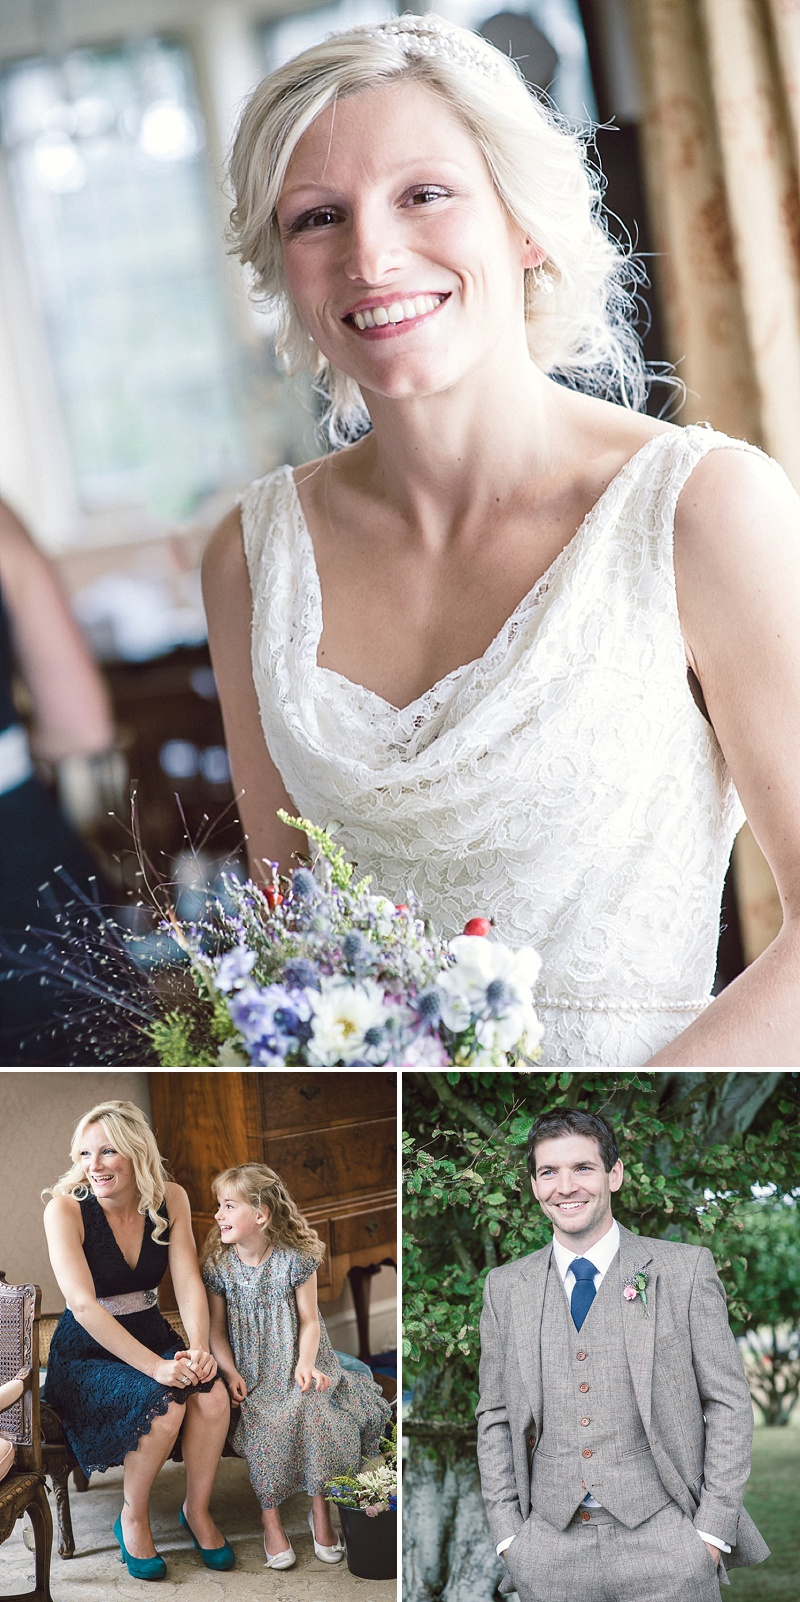 Rustic Wedding At Studland Bay House In Dorset With Bride In Charlie Brear With Hermione Harbutt Accessories And Groom In Victor Valentine Suit With Bridesmaids In French Connection 2